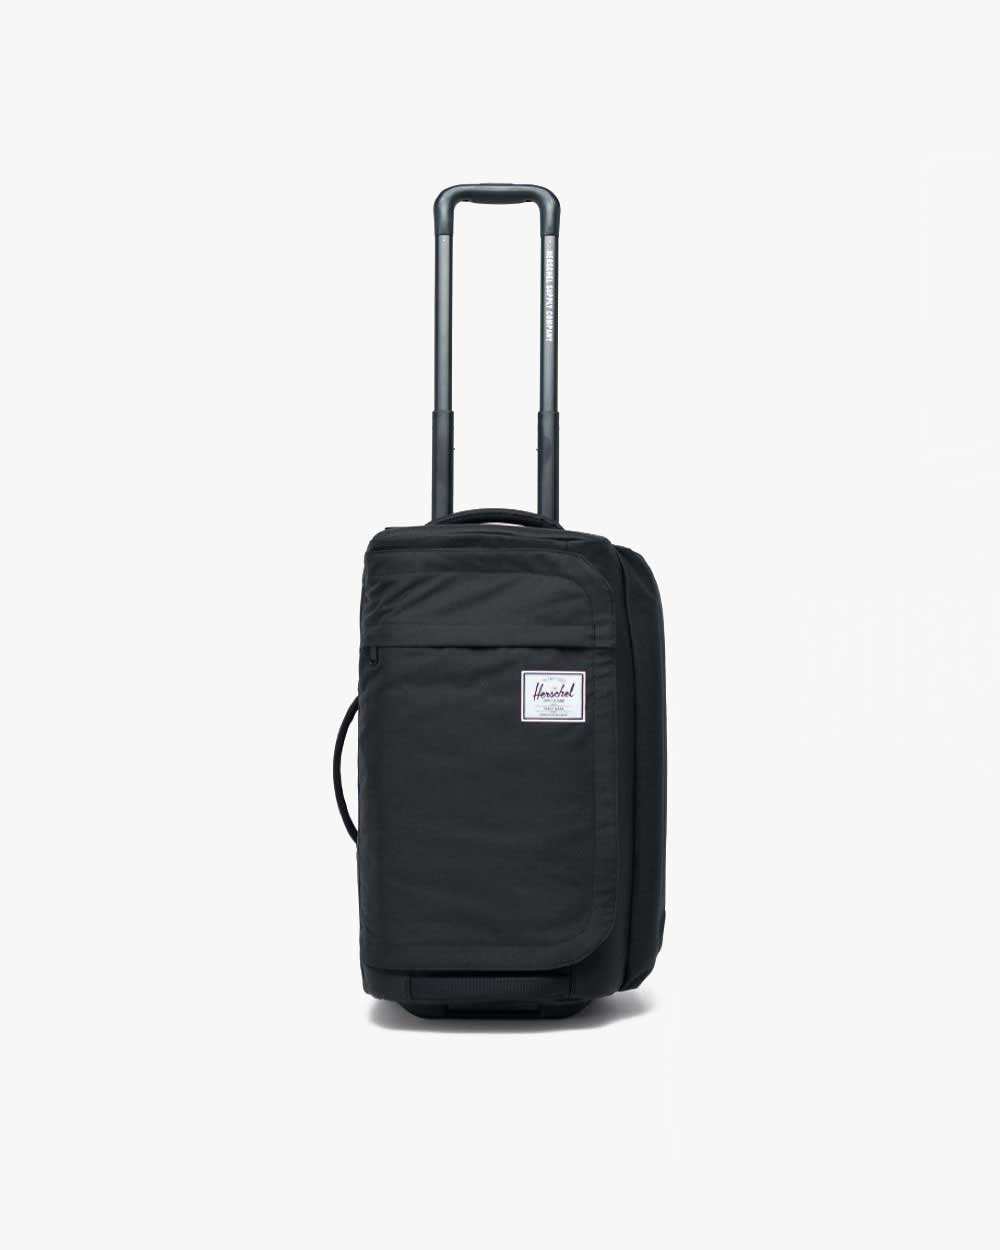 image of a black outfitter 50 litre luggage